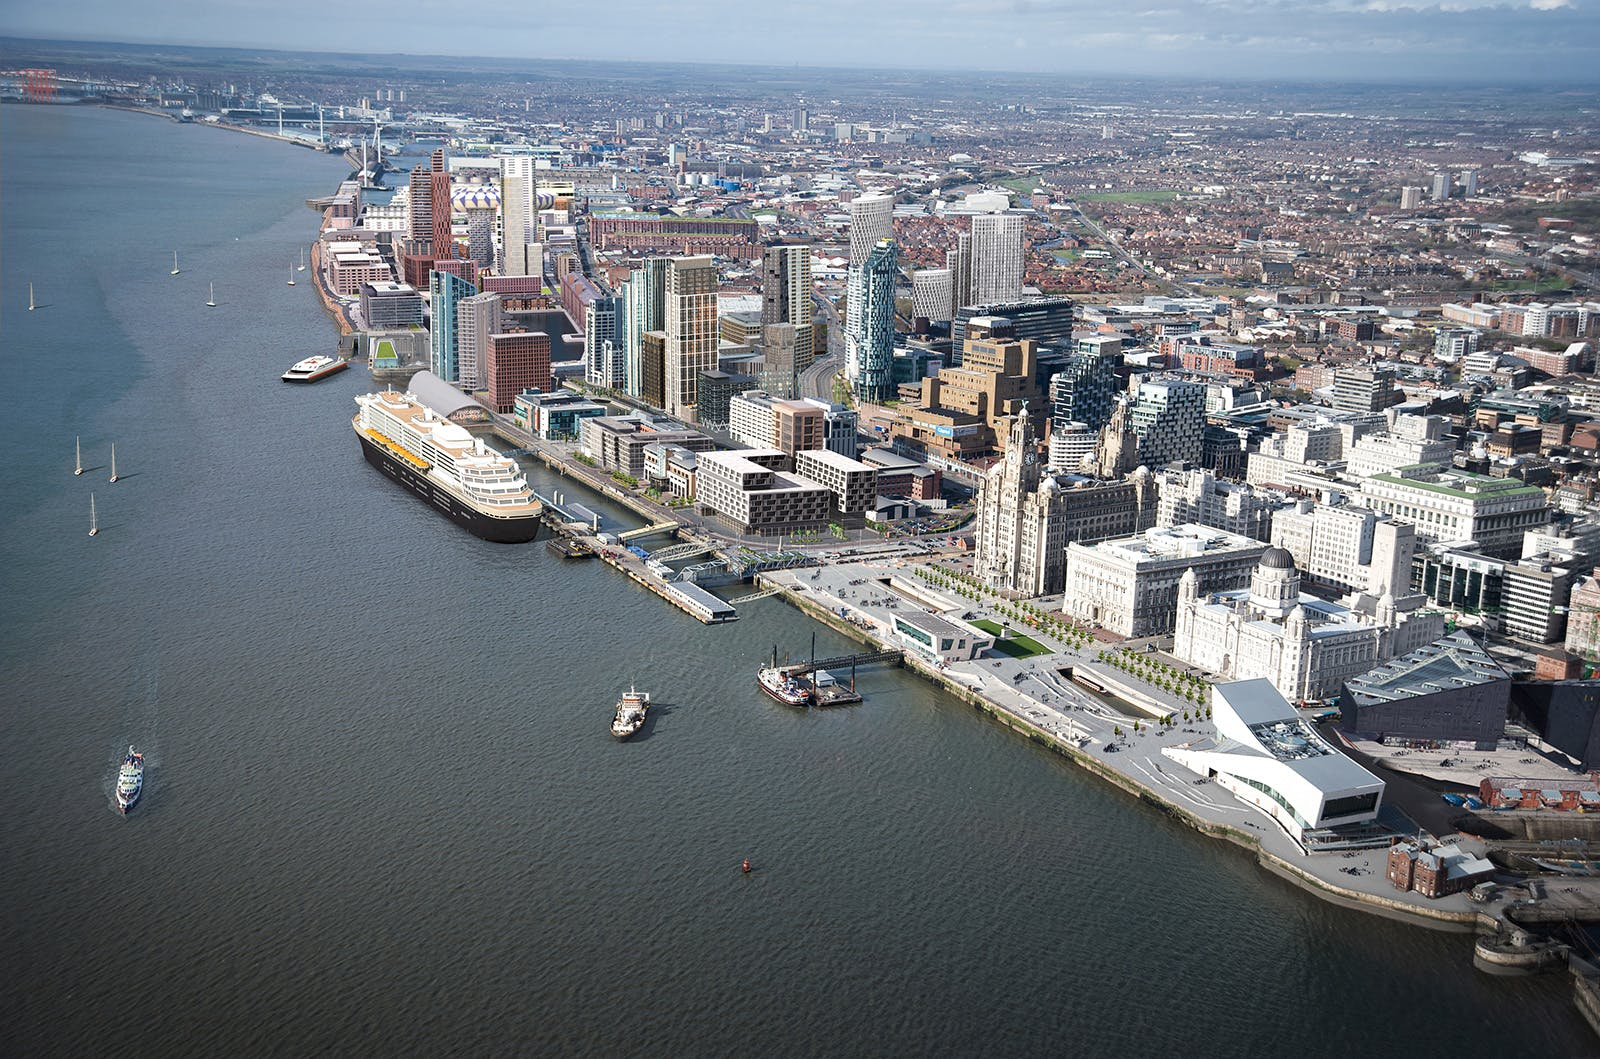 A rendering of how the waterfront might look after the planned Liverpool Waters redevelopment